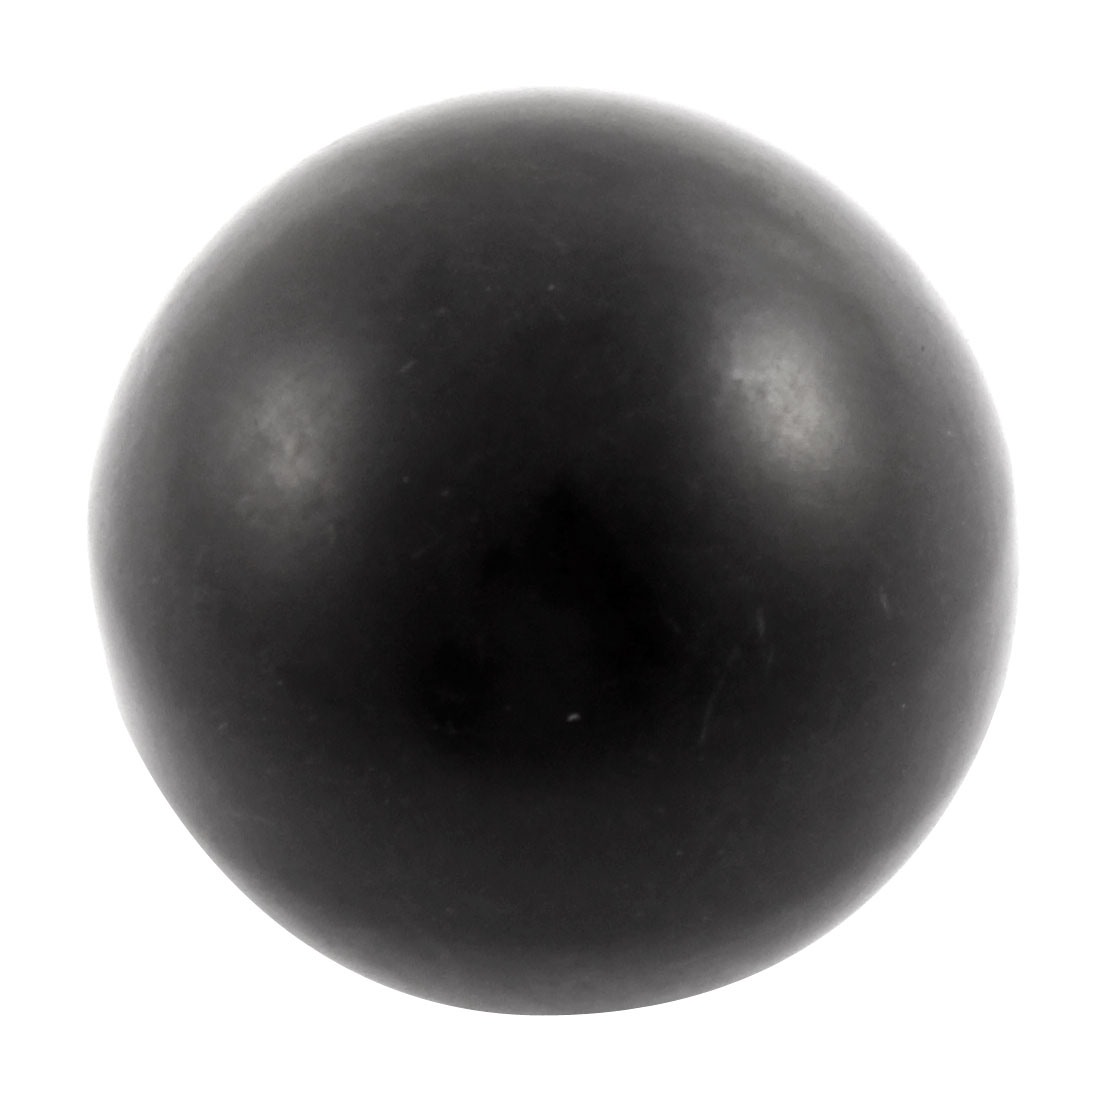 M12 x 50mm Female Thread Round 50mm Diameter Ball Lever Knob Black